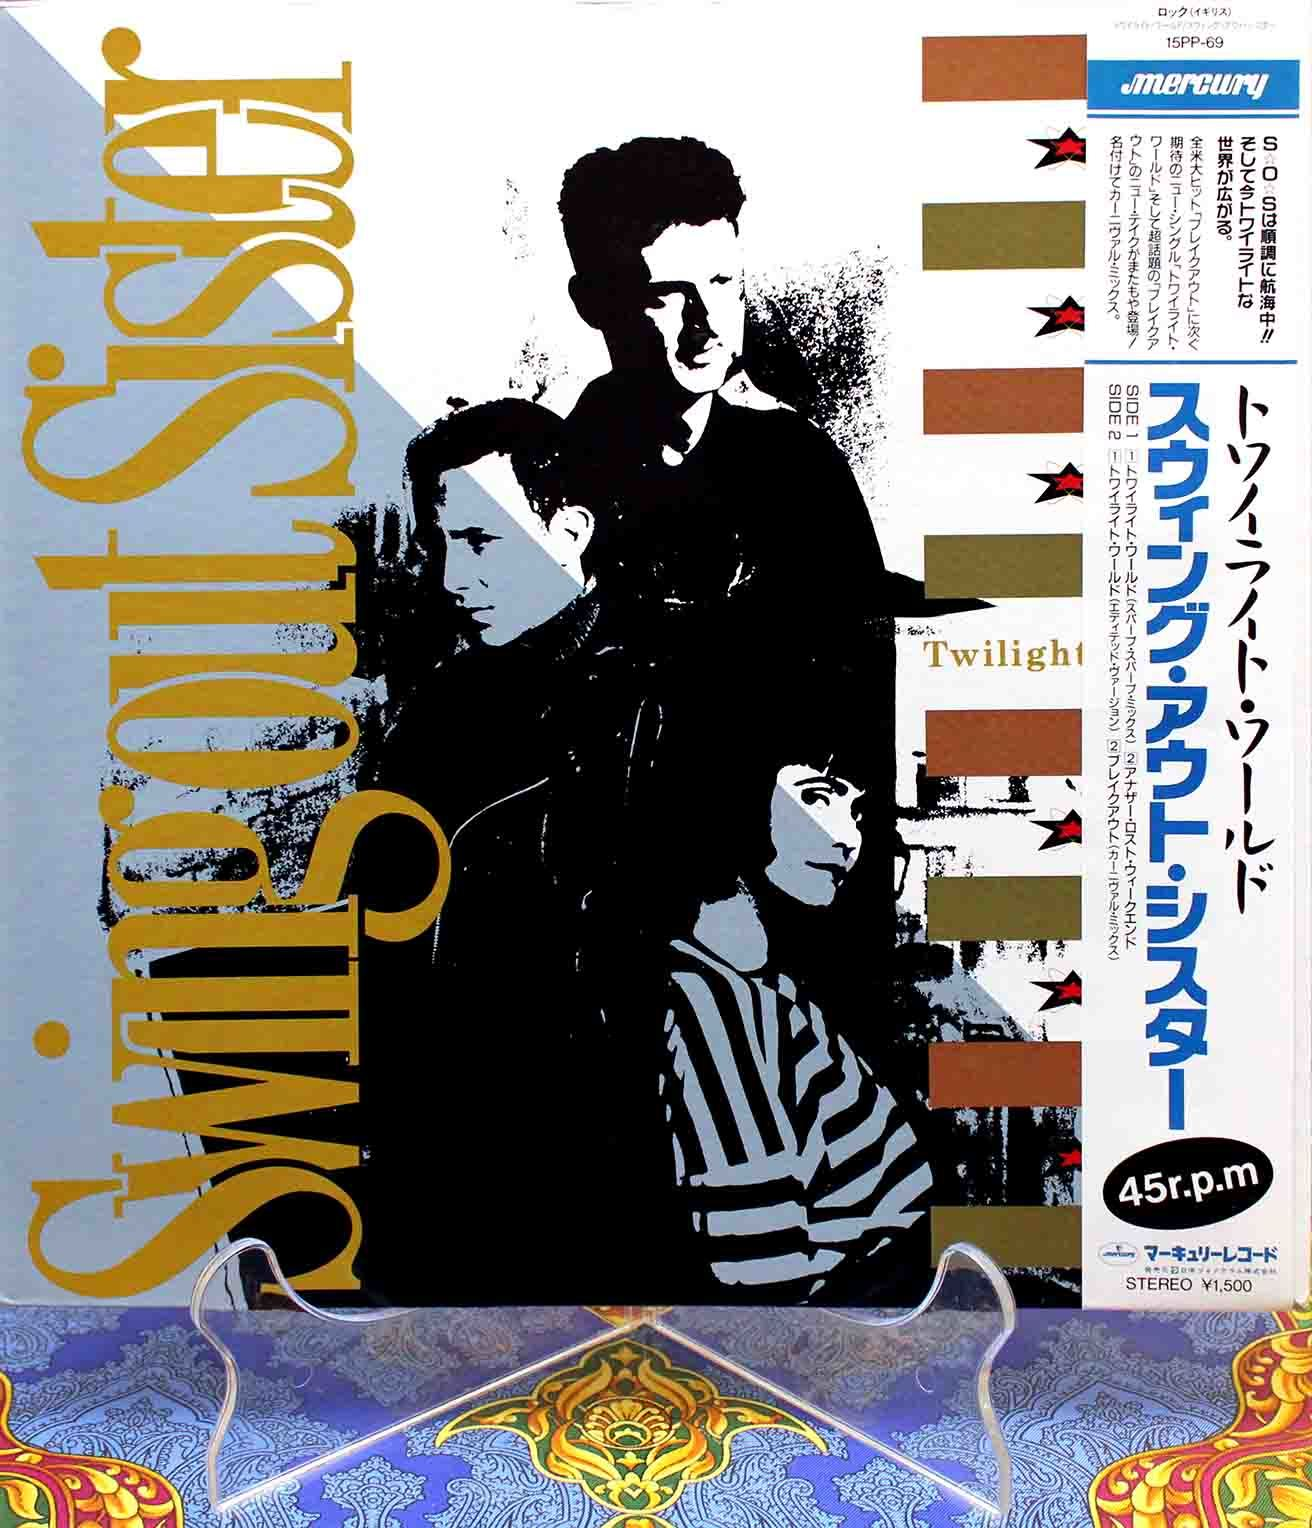 Swing out sister twilight 01